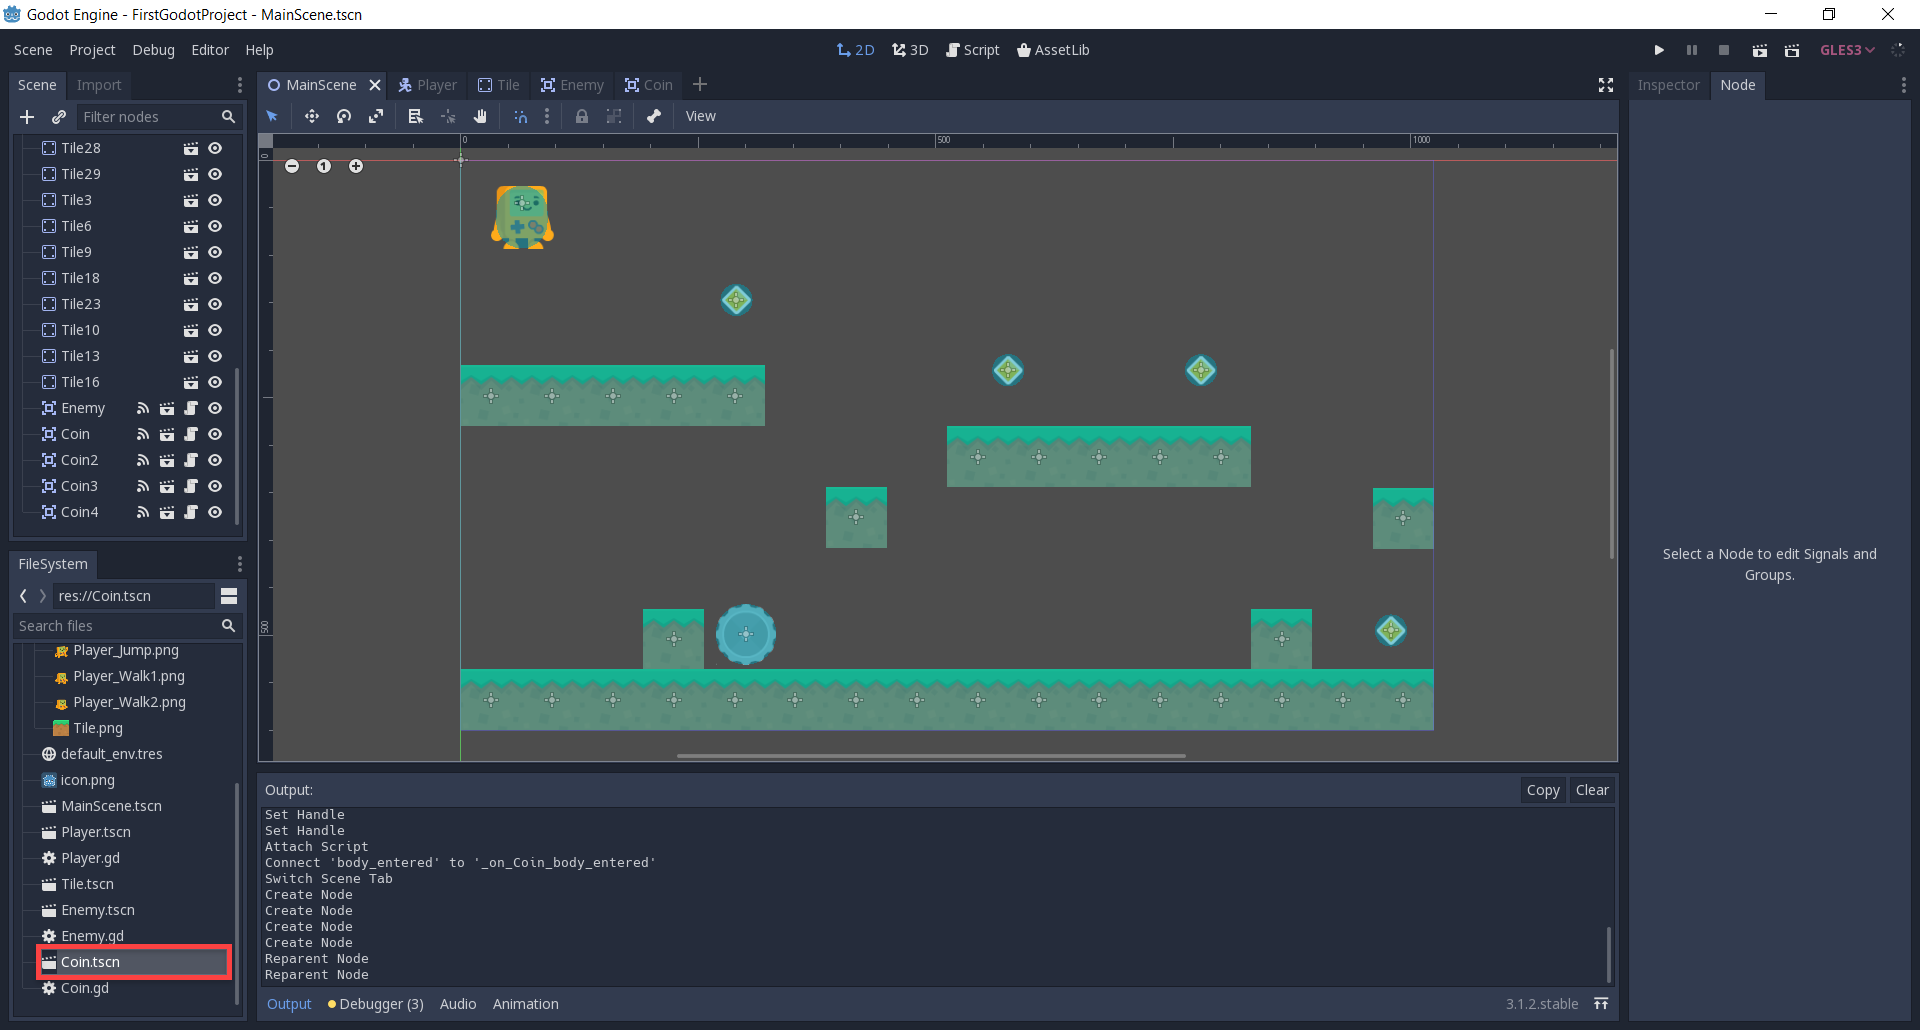 Godot with Coin added to 2D platformer level